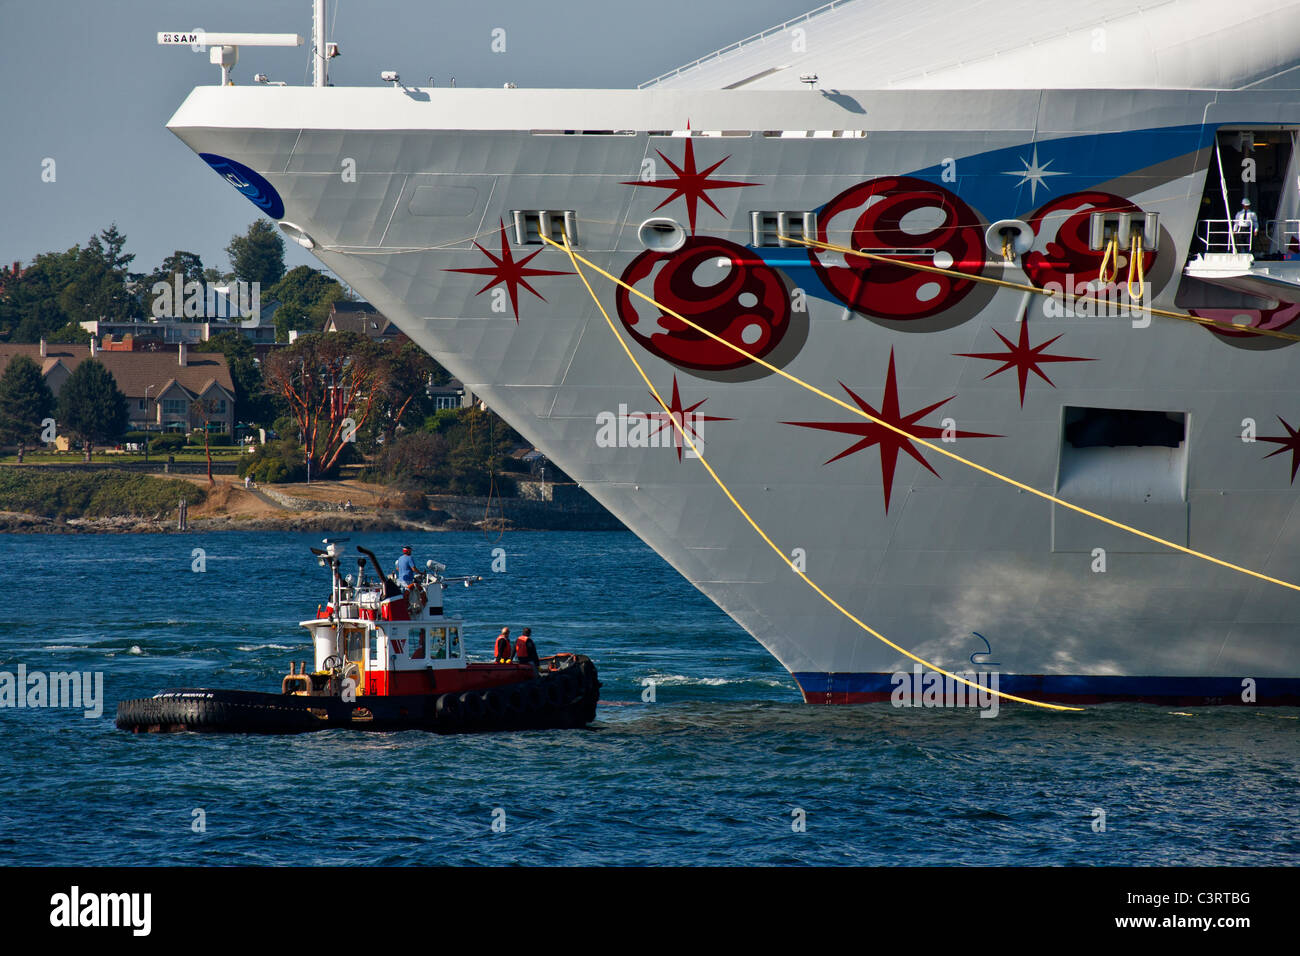 Tugboat and large cruise ship in port of Victoria-Victoria, British Columbia, Canada. - Stock Image